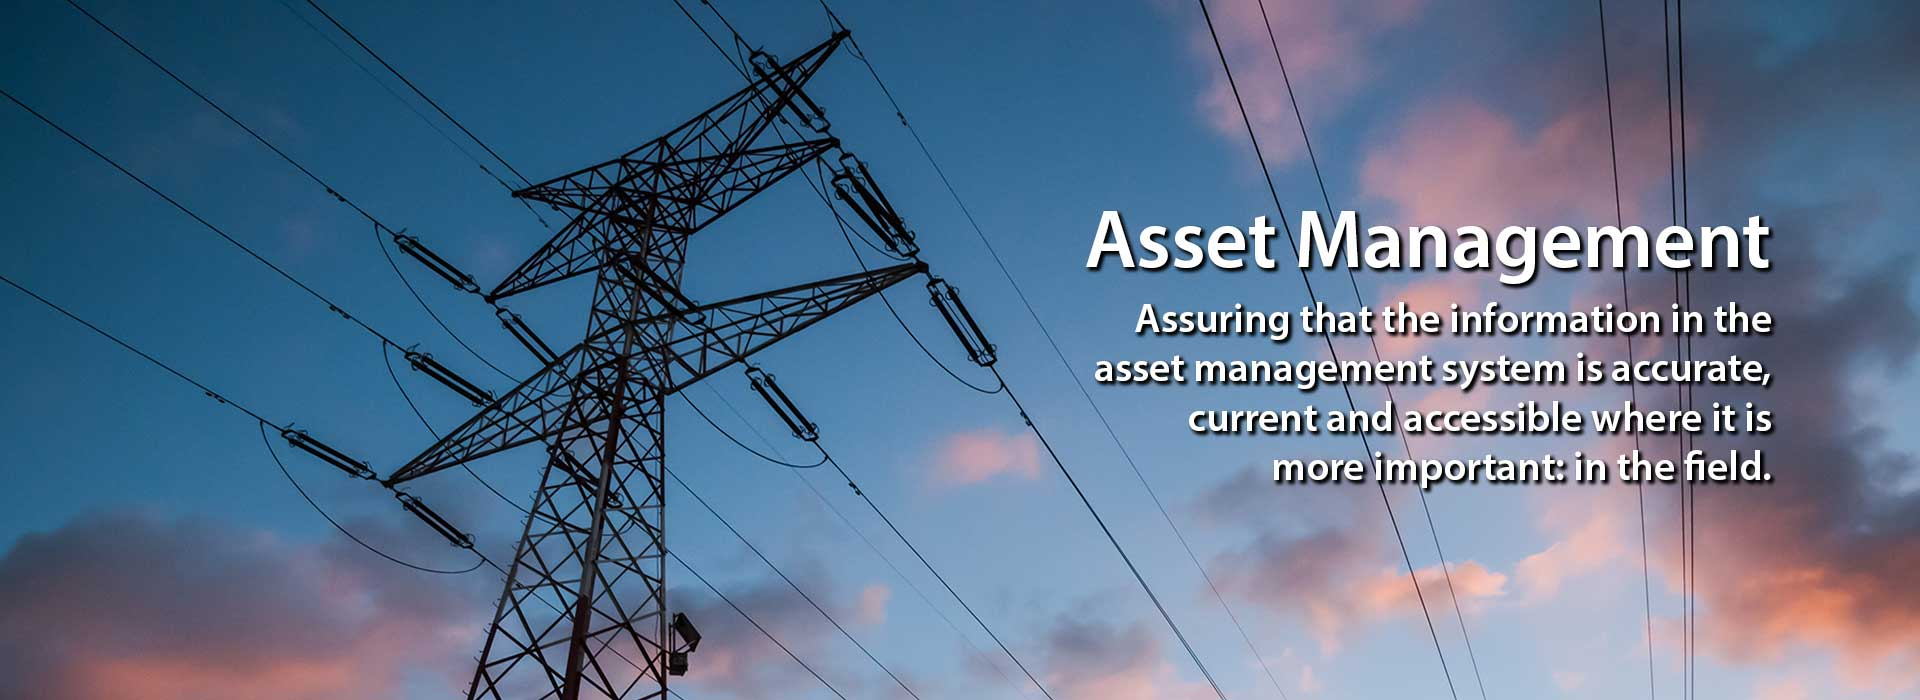 Assuring that the information in the asset management system is accurate, current and accessible where it is more important: in the field.